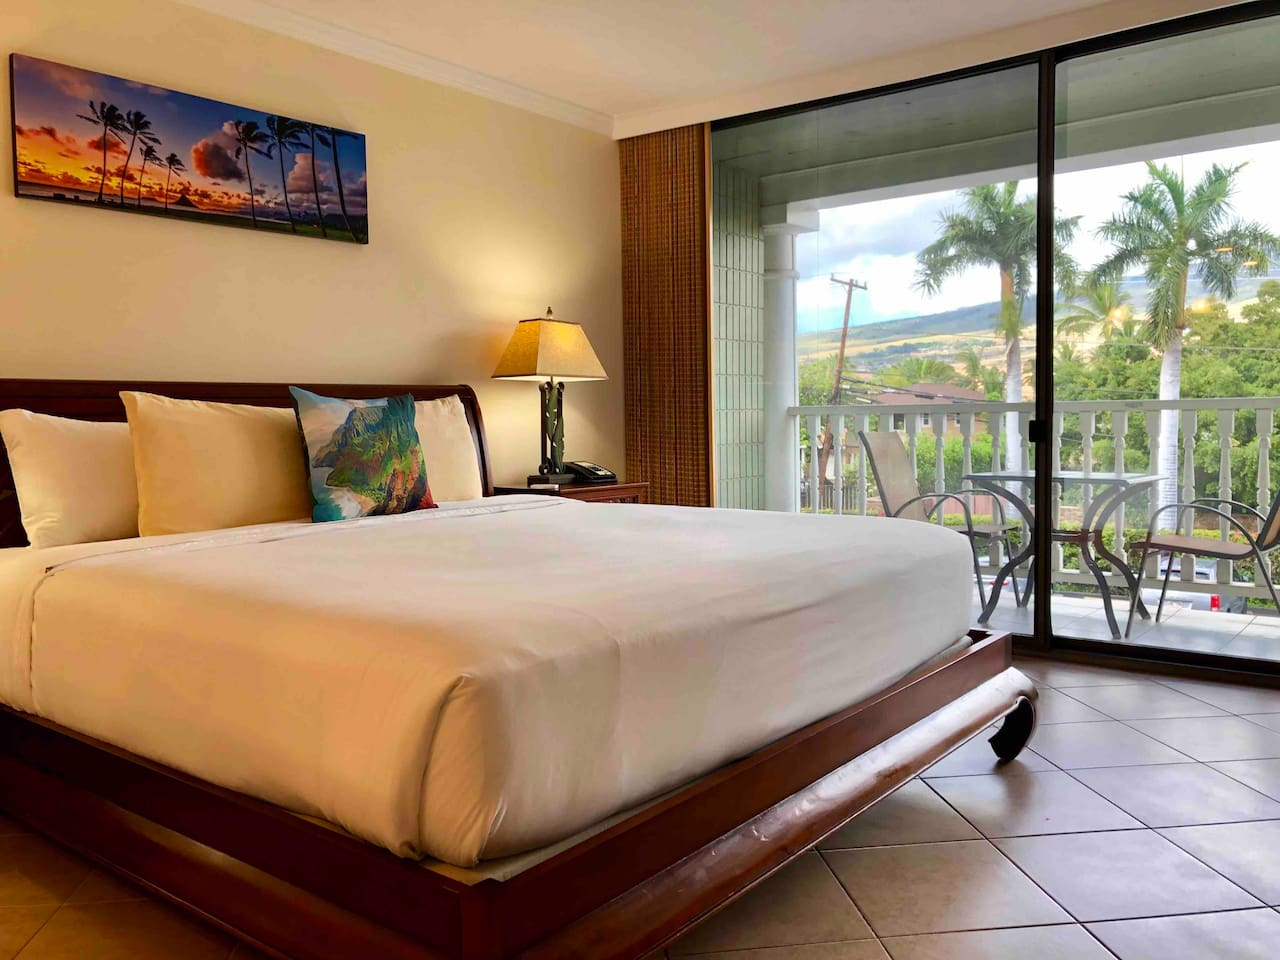 Enjoy a pleasant sleep on the king size bed and wake up to the breathtaking views of the West Maui Mountains.